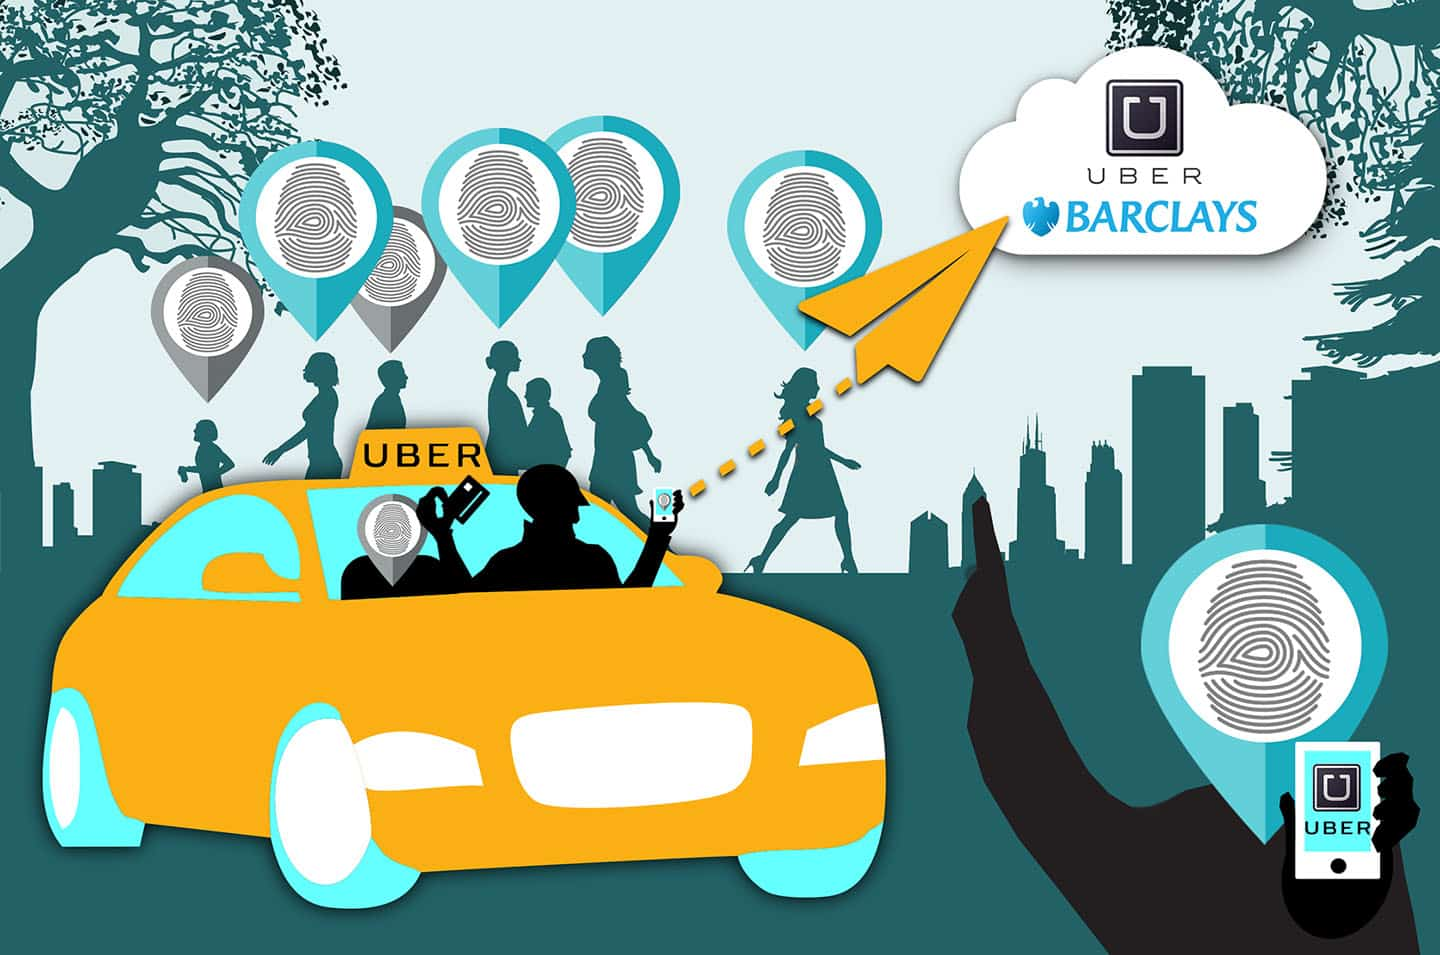 Facebook on Wheels: Why the Uber/Barclays Co-Brand Card Is Big News